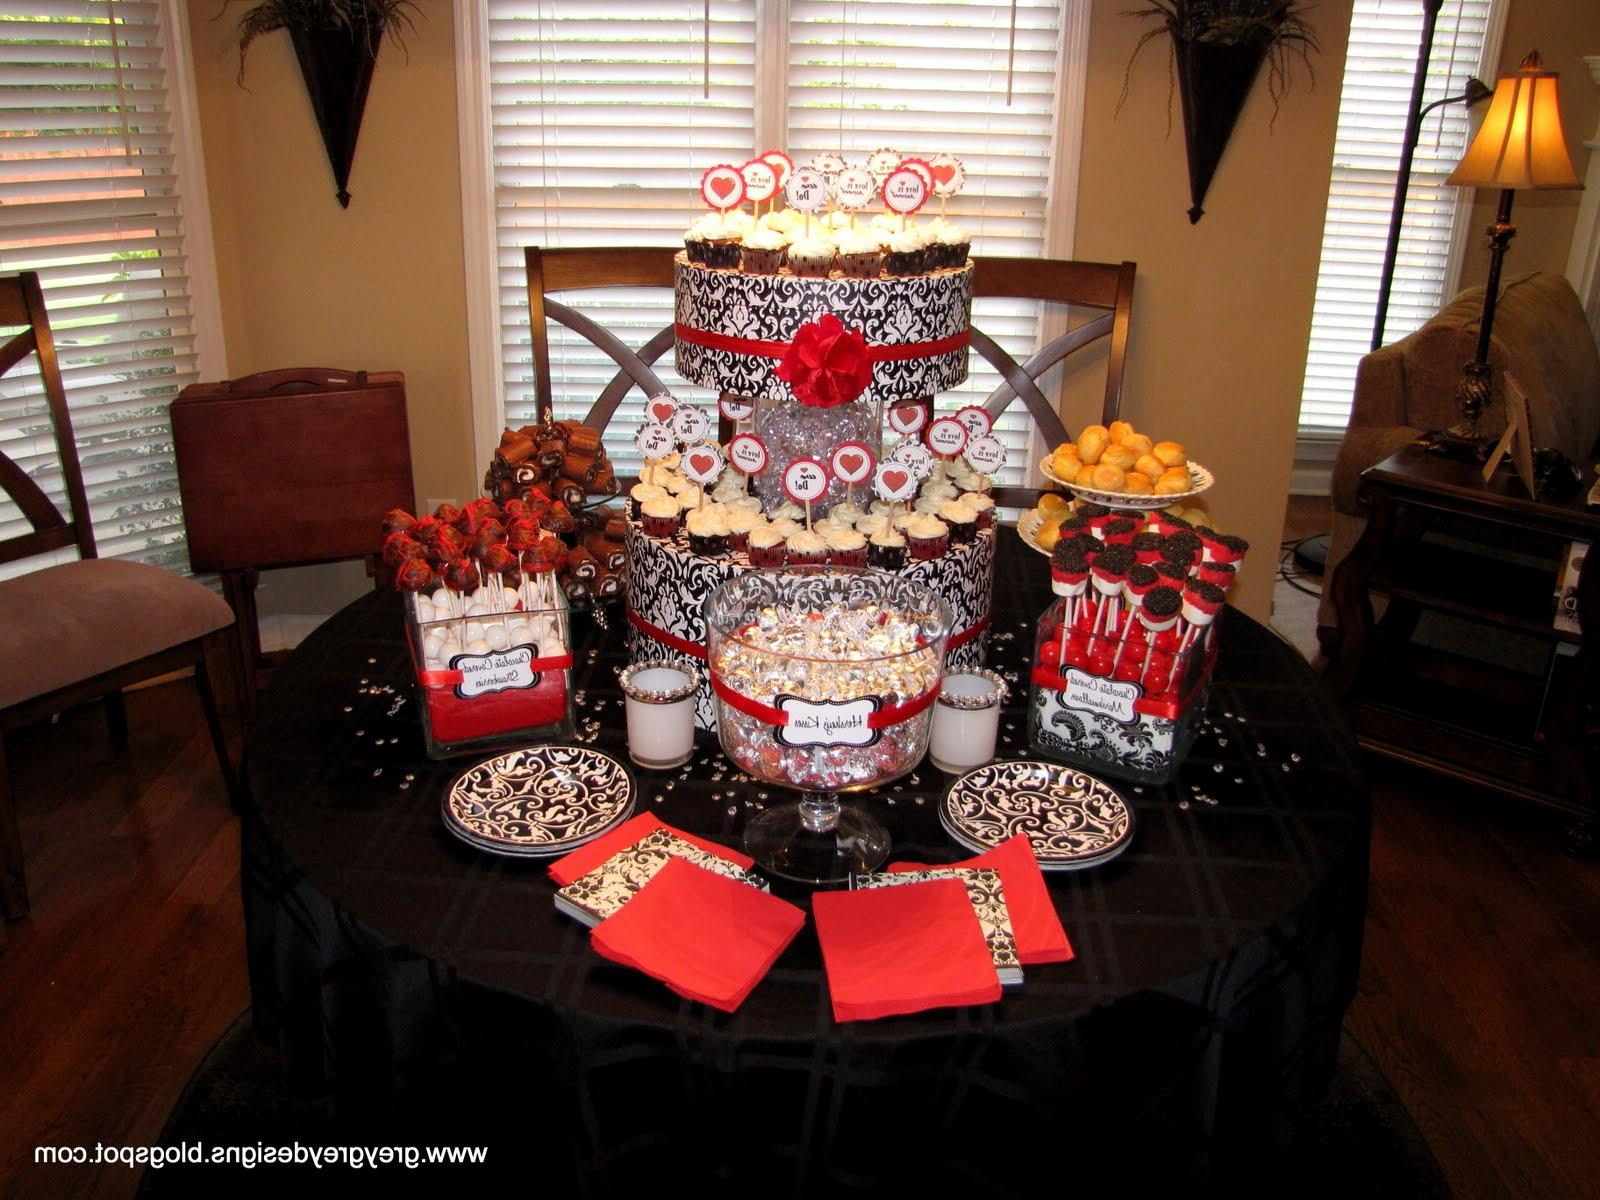 Red and black and white damask